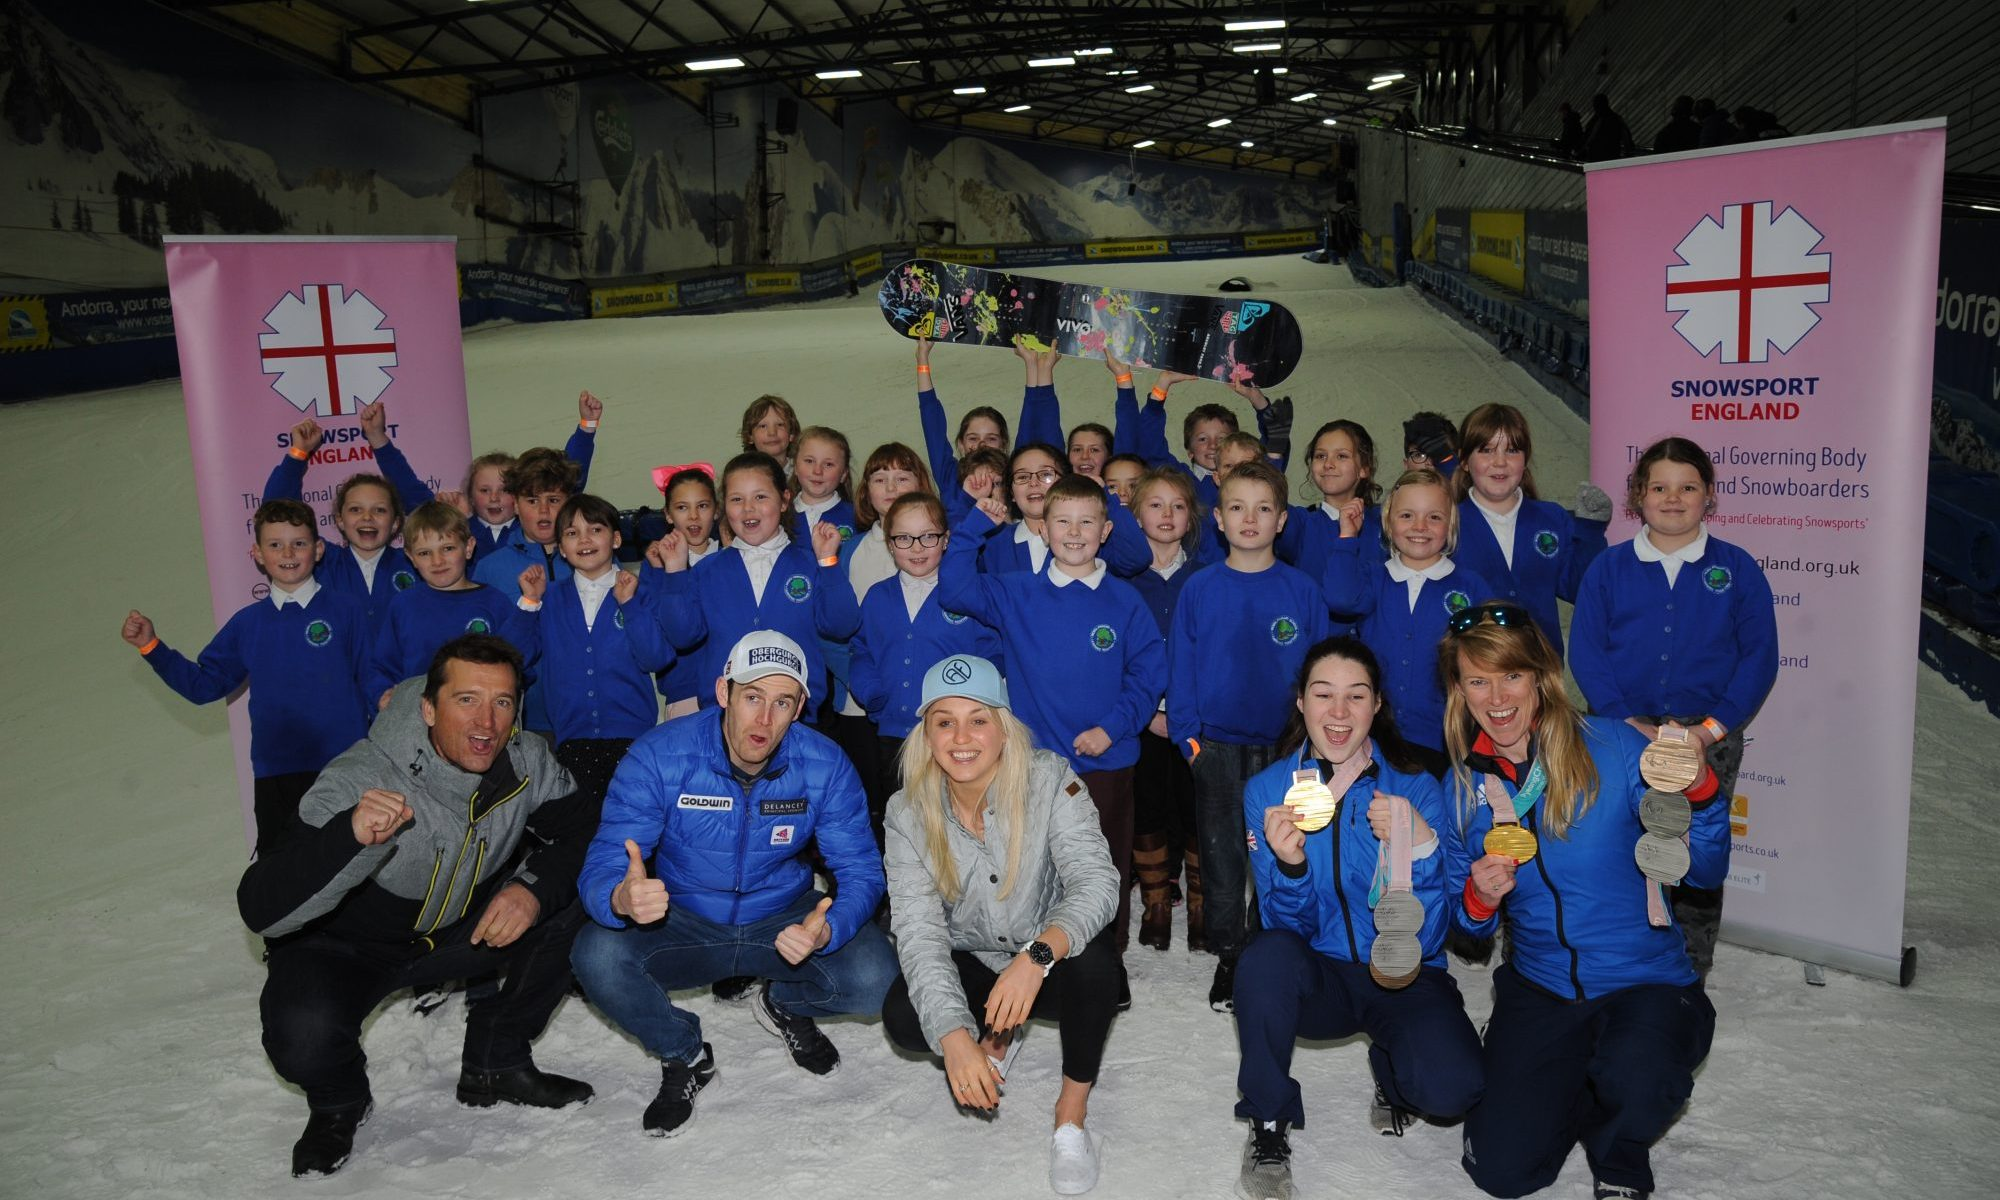 Winter Olympians, British snowboarder Aimee Fuller and British alpine skier Dave Ryding and Paralympic gold medallists Menna Fitzpatrick and Jen Kehoe and Ski Sunday's Graham Bell join over 30 lucky pupils at a National Schools Snowsport Week launch event at The SnowDome in Tamworth. PRESS ASSOCIATION Photo. Picture date: Monday April 16th, 2018. Photo credit should read: Rui Vieira/PA Wire. National Schools Snowsport Week is Back This Month.